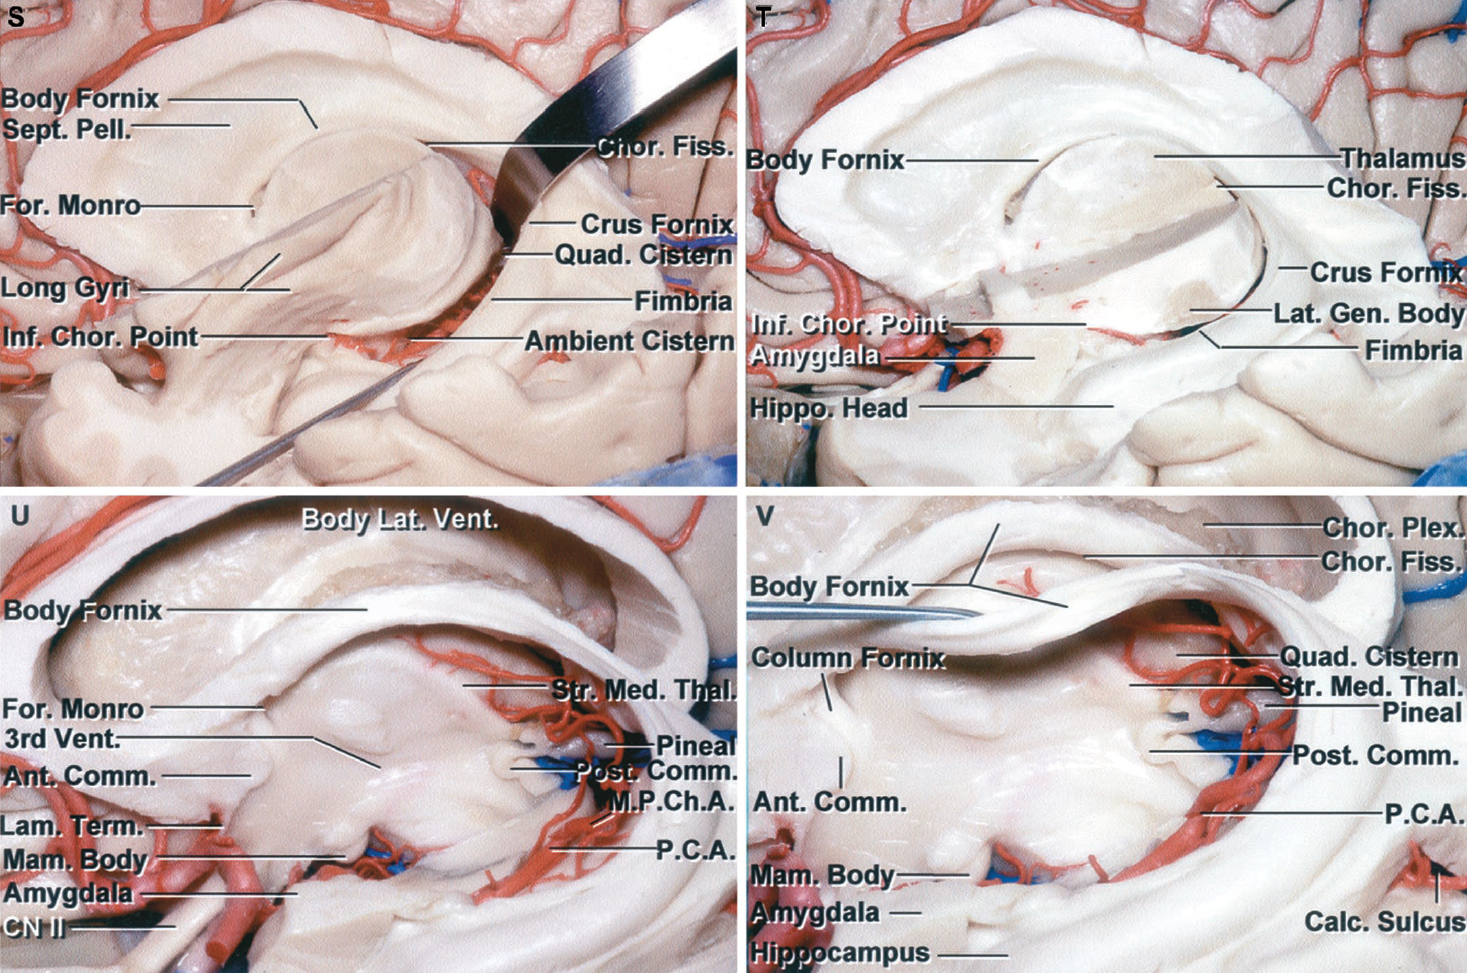 Figure 1.2 S-V. S, a retractor has been placed between the thalamus and the crus of the fornix to open the choroidal fissure. Opening the choroidal fissure in the body of the ventricle exposes the third ventricle. Opening the choroidal fissure between the pulvinar and crus of the fornix exposes the quadrigeminal cistern, and opening the fissure between the lower surface of the thalamus and the fimbria of the fornix exposes the ambient cistern. T, the remaining insula has been removed to expose the thalamus forming the inner rim of the choroidal fissure. The lateral geniculate body is exposed at the lower margin of the thalamus. The optic radiations pass laterally above the hippocampus in the roof of the temporal horn and posteriorly around the lateral margin at the atrium to reach the calcarine sulcus. The anterior wall of the temporal horn is formed by the amygdala, which tilts backward above, but is separated from the hippocampal head by the temporal horn. U, the thalamus has been removed to expose the third ventricle. The body, crus, and fimbria of the fornix, forming the outer margin of the choroidal fissure, have been preserved. Opening the choroidal fissure in front of the crus of the fornix exposes the pineal region and quadrigeminal cistern. Opening the choroidal fissure adjacent to the body of the fornix exposes the third ventricle. Opening the choroidal fissure in the temporal horn exposes the ambient cistern and posterior cerebral arteries. The medial posterior choroidal arteries are exposed in the quadrigeminal cistern. The striae medullaris thalami marks the lower edge of the velum interpositum, in which the internal cerebral veins course. V, the left half of the body of the fornix has been folded downward to expose the right half of the body and medial aspect of the contralateral choroidal fissure located between the body of the fornix and the upper surface of the thalamus. The pineal gland and posterior commissure are exposed at the posterior margin and the anterior commissure and columns of the fornix are exposed at the anterior margin of the third ventricle. A., artery; A.C.A., anterior cerebral artery; Ang., angular; Ant., anterior; Asc., ascending; Calc., calcar, calcarine; Call., callosum; Caud., caudate; Cent., central; Chor., choroid, choroidal; Cing., cingulate; Circ., circular; CN, cranial nerve; Comm., commissure; Corp., corpus; Fiss., fissure; For., foramen; Front., frontal; Gen., geniculate; Glob., globus; Hippo., hippocampal; Inf., inferior; Intrapar., intraparietal; Lam., lamina; Lat., lateral; Lent., lenticular, lentiform; Lob., lobule; M.P.Ch.A., medial posterior choroidal artery; Mam., mamillary; Med., medullaris; Mid., middle; Nucl., nucleus; Occip., occipital; Operc., opercularis; Orb., orbitalis; P.C.A., posterior cerebral artery; Pall., pallidus; Par., parietal; Paracent., paracentral; Par. Occip., parieto-occipital; Pell., pellucidum; Plex., plexus; Post., posterior; Postcent., postcentral; Precent., precentral; Quad., quadrigeminal; Sept., septum; Str., striae; Sup., superior; Supramarg., supramarginal; Temp., temporal; Term., terminalis; Thal., thalamic, thalamus; Triang., triangularis; Vent., ventricle.